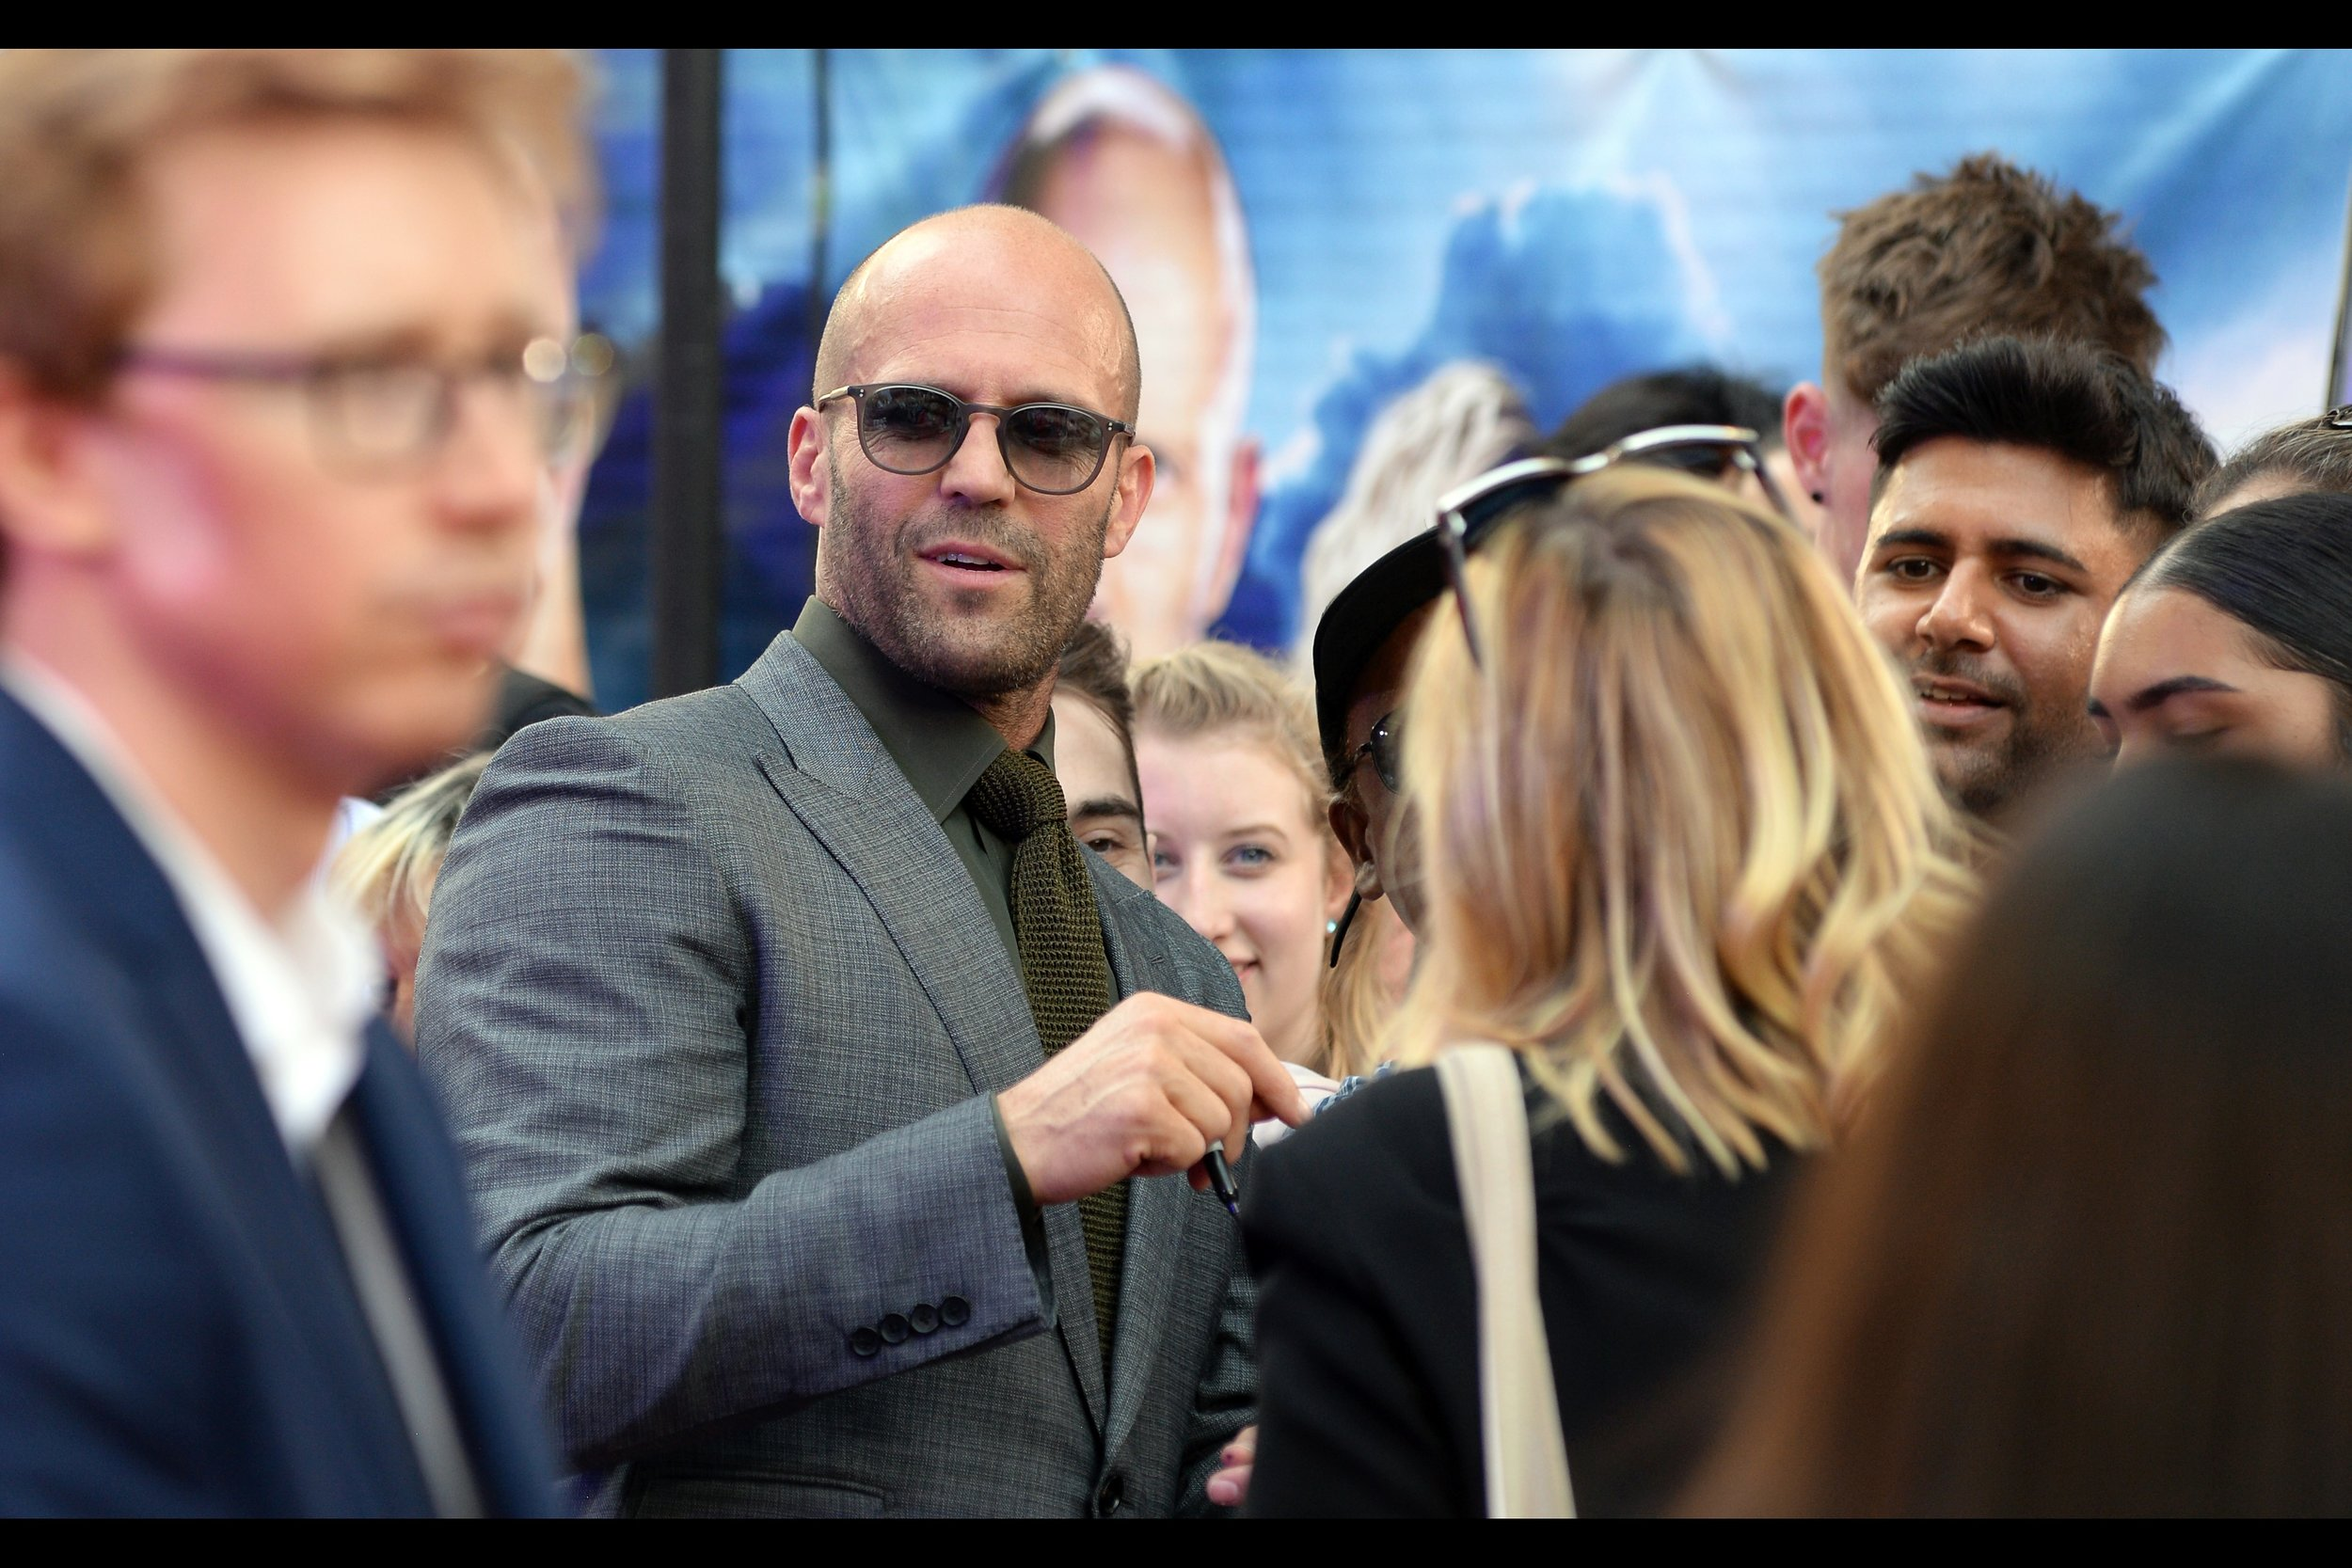 """""""People can change, you know? For instance, that guy over there. One day he might lose that hair and become even more dashing!""""   In my opinion, Jason Statham, The Rock, Vin Diesel and quite frankly this whole franchise has done more for the self-esteem of bald and balding men than any I can think of. Bless 'em."""